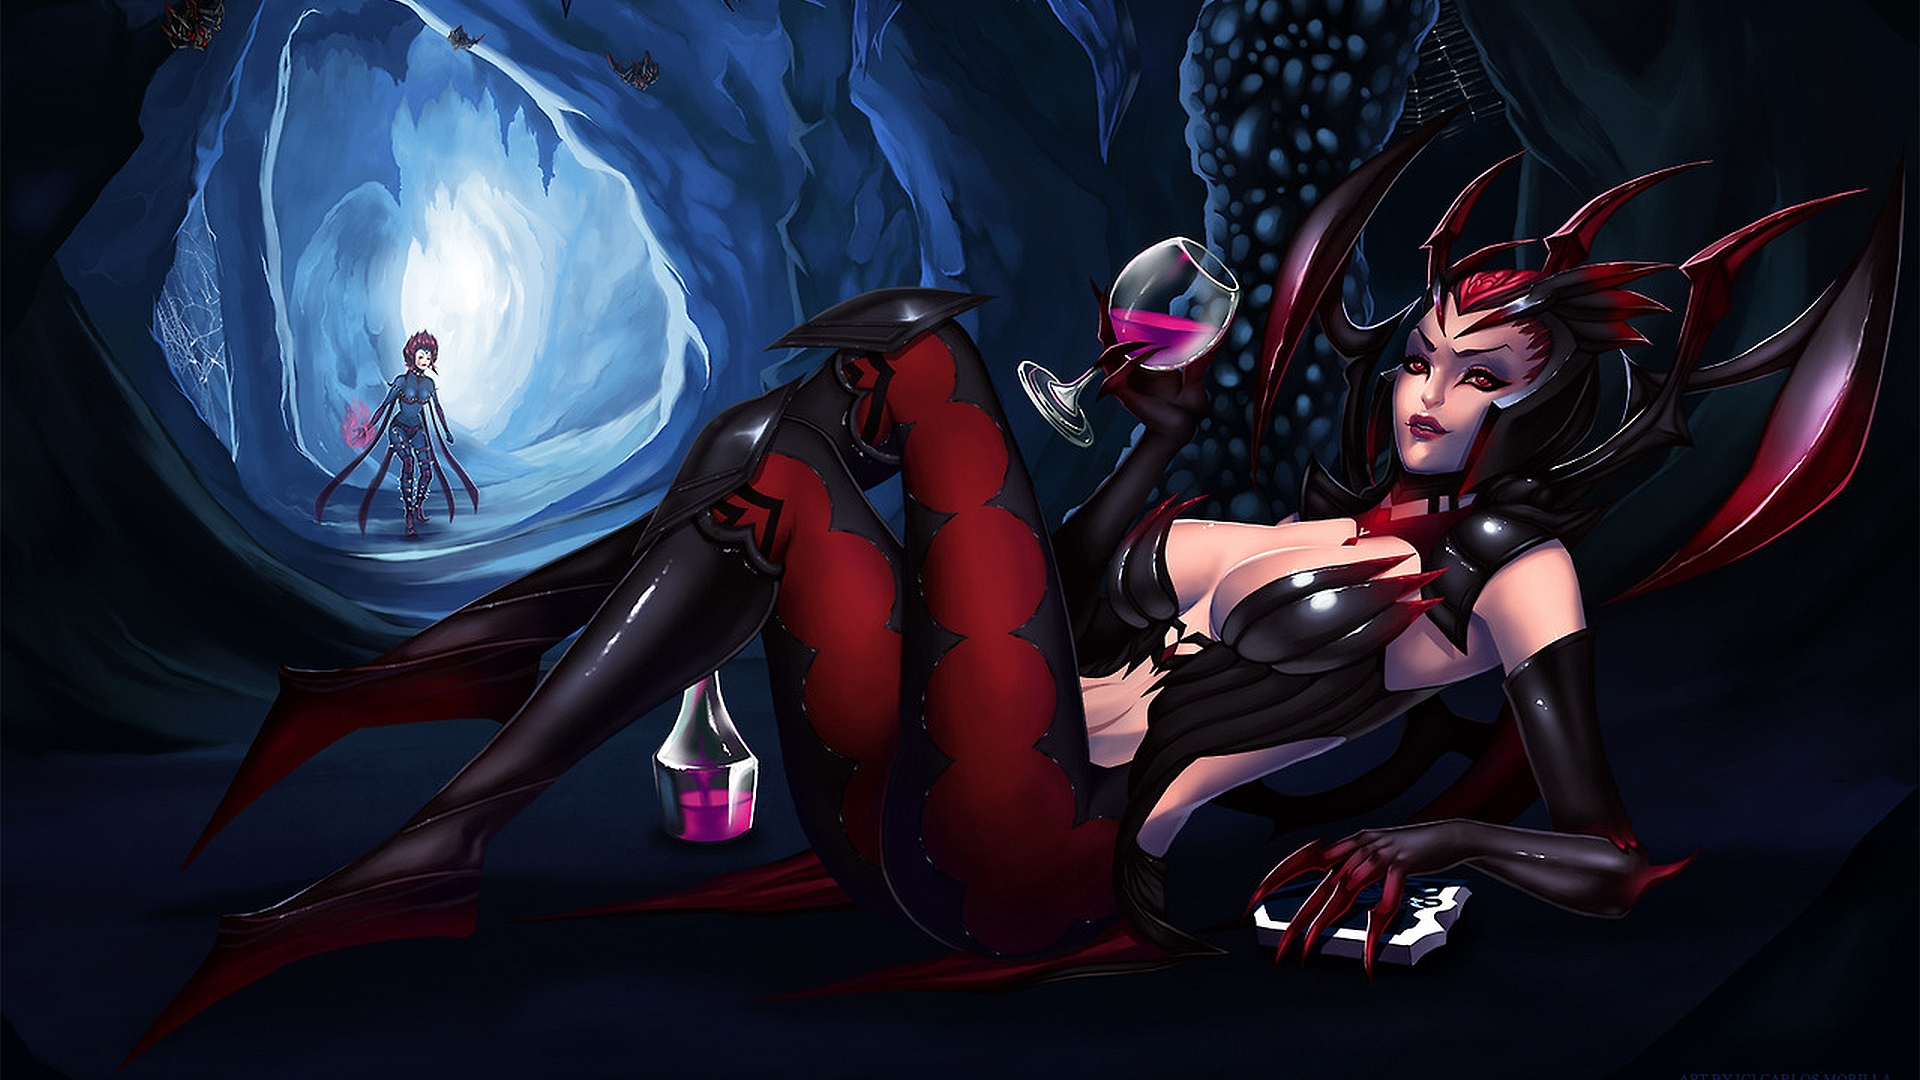 Video Game League Of Legends Evelynn Elise Wallpaper